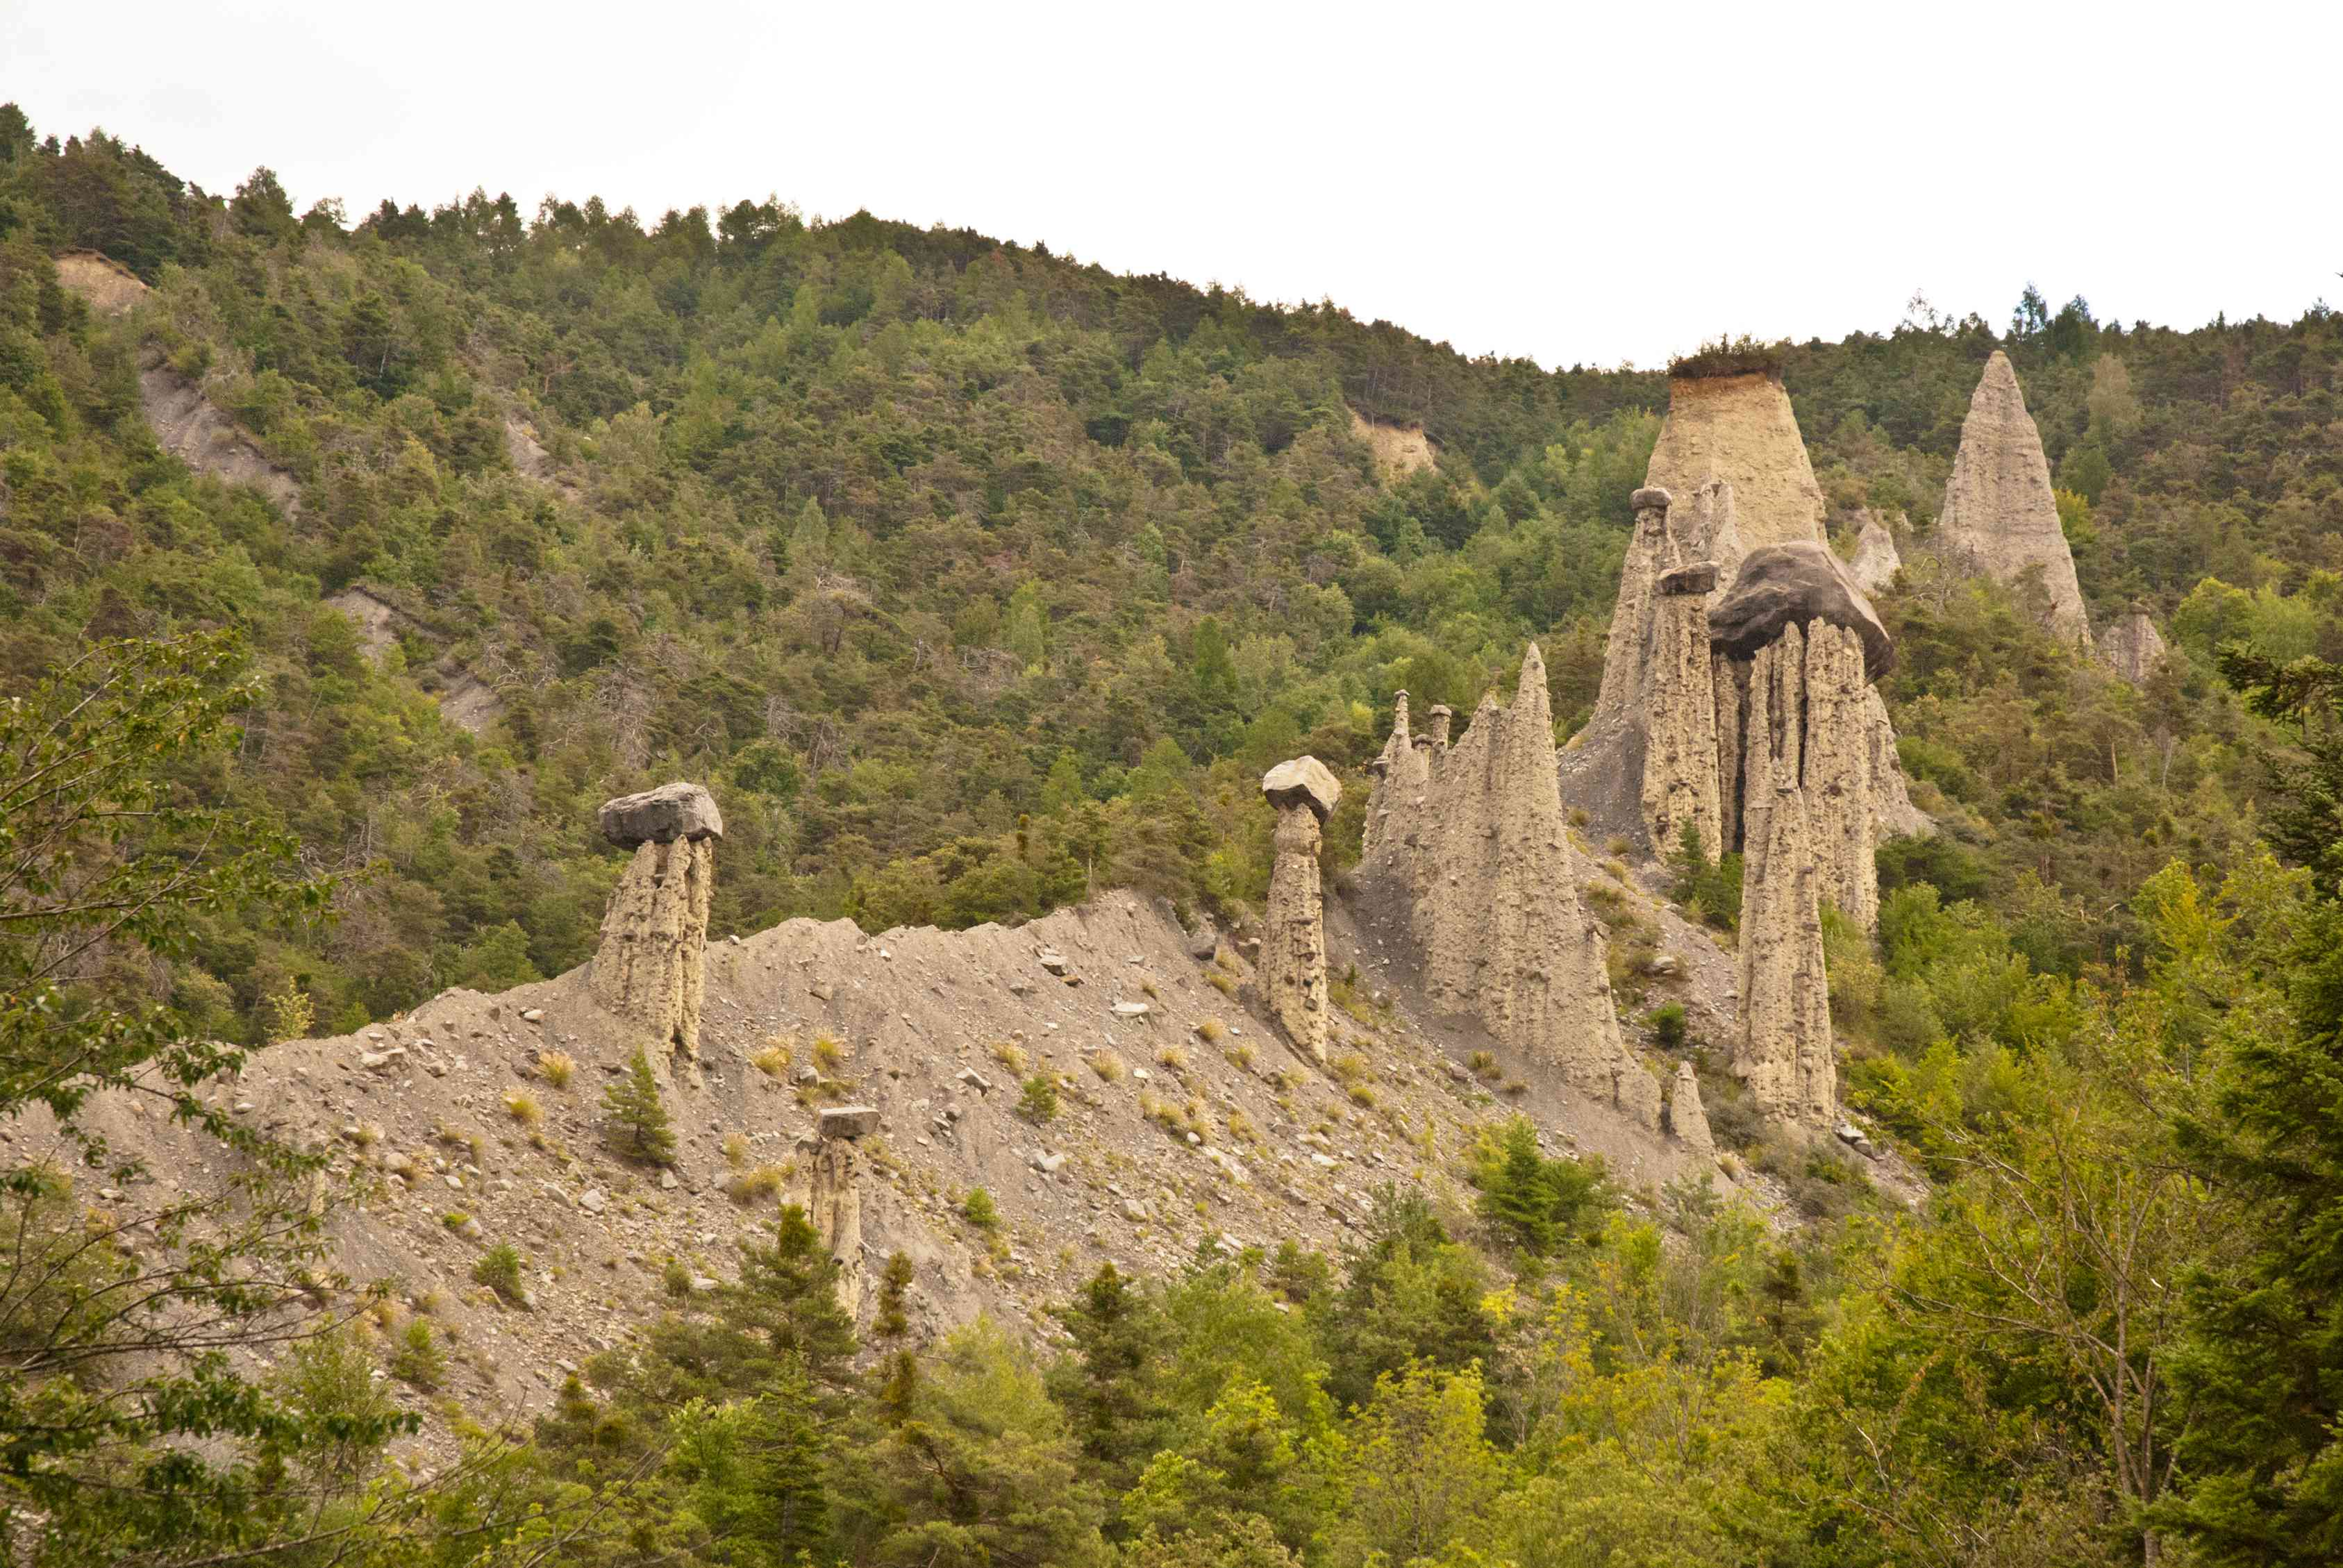 Row of hoodoos surrounded by green trees in Pontis, France.